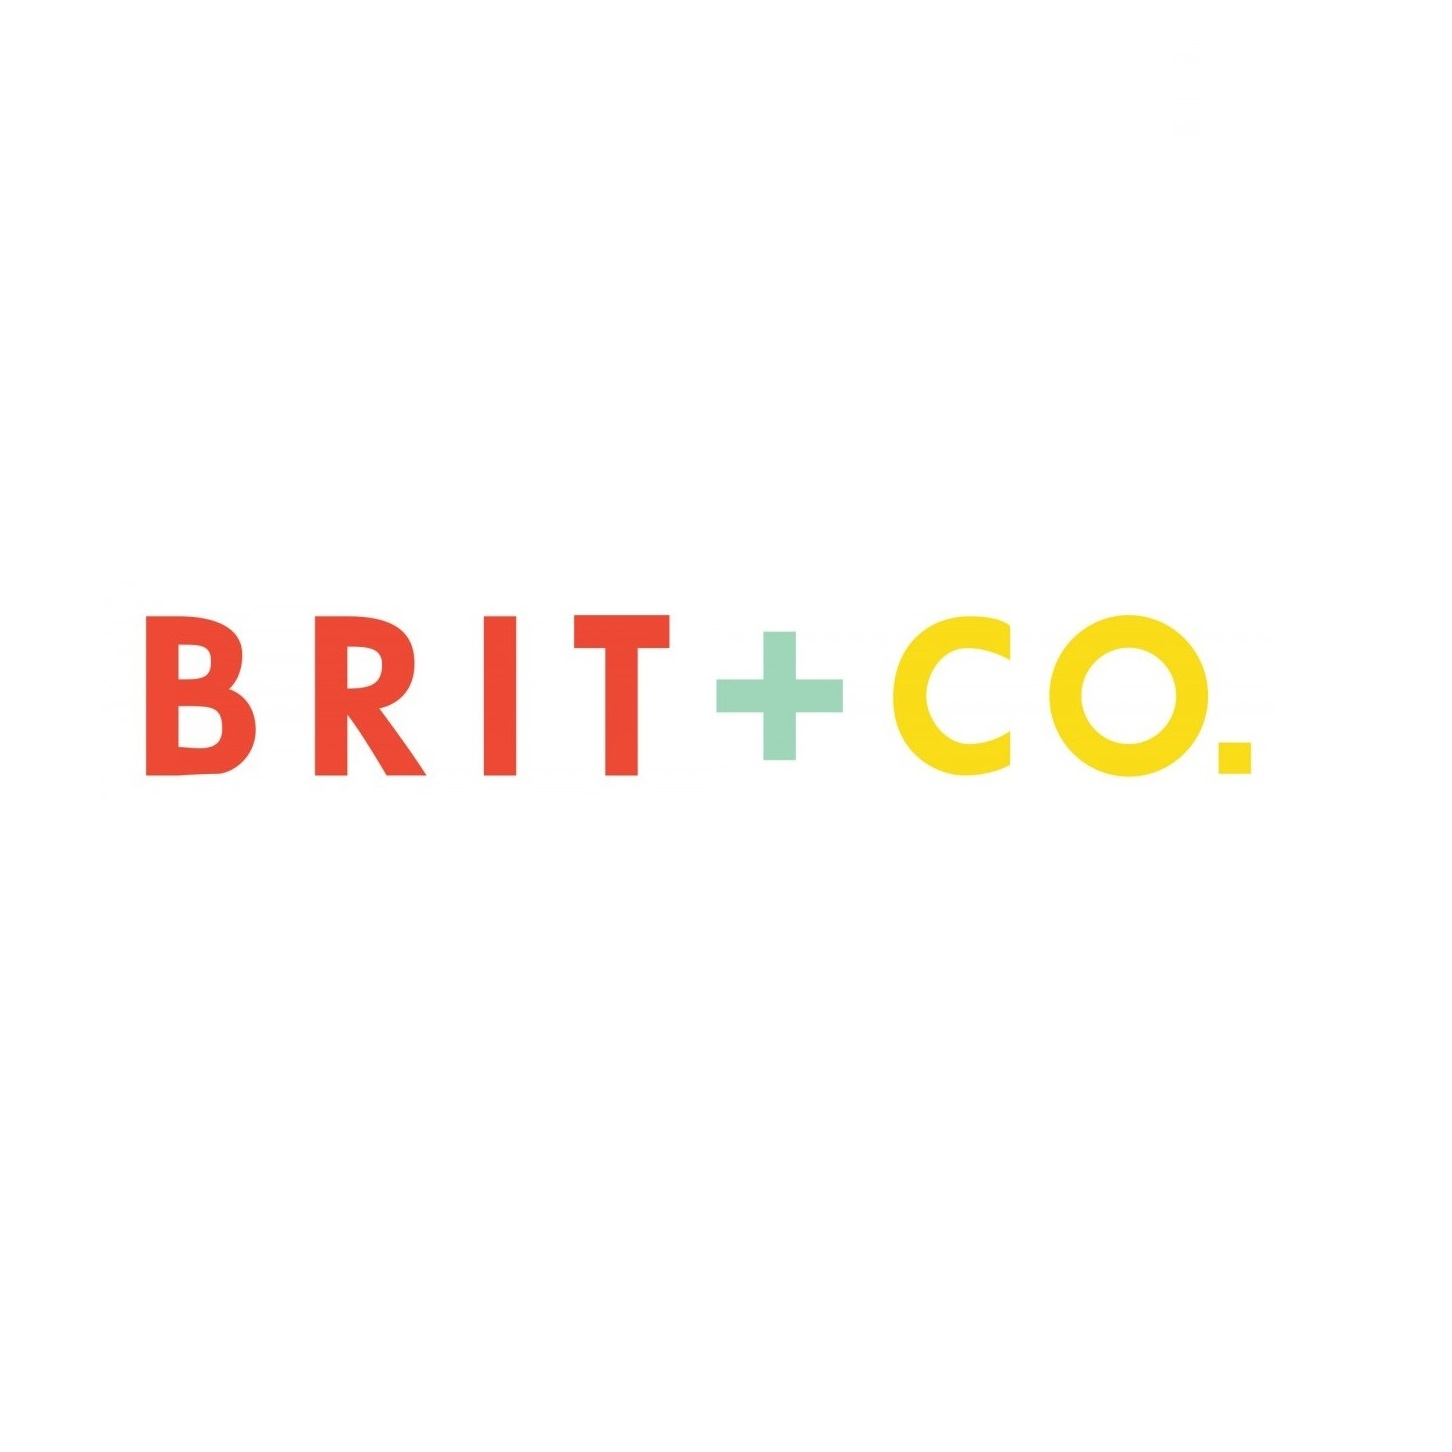 """""""Say Hello to the Perfect Work Handbag for Women Who Do It All""""    READ MORE AT BRIT + CO."""